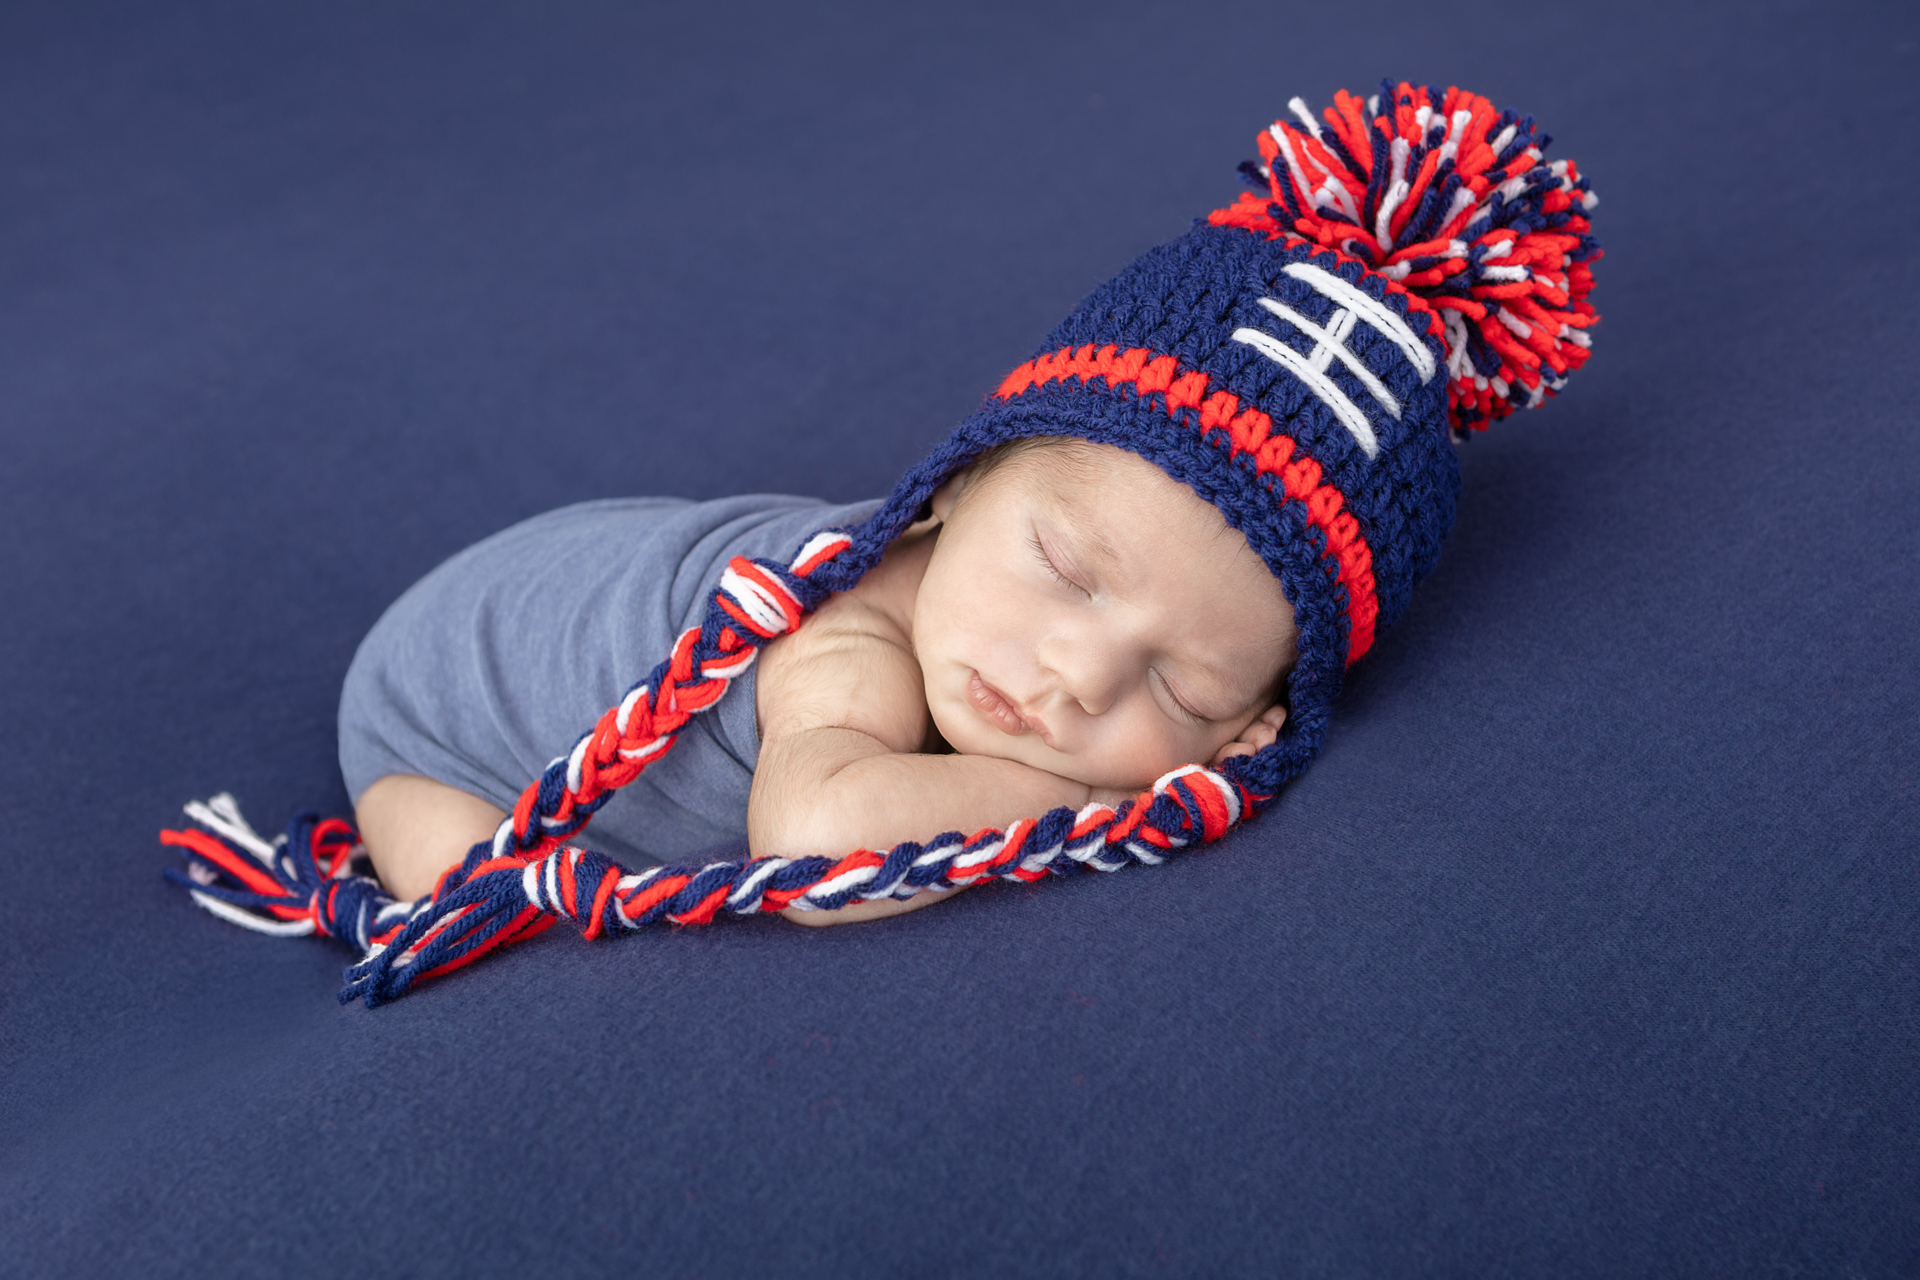 New England Patriots inspired newborn photo; sleeping baby boy wearing a Patriots red, white, blue stocking cap